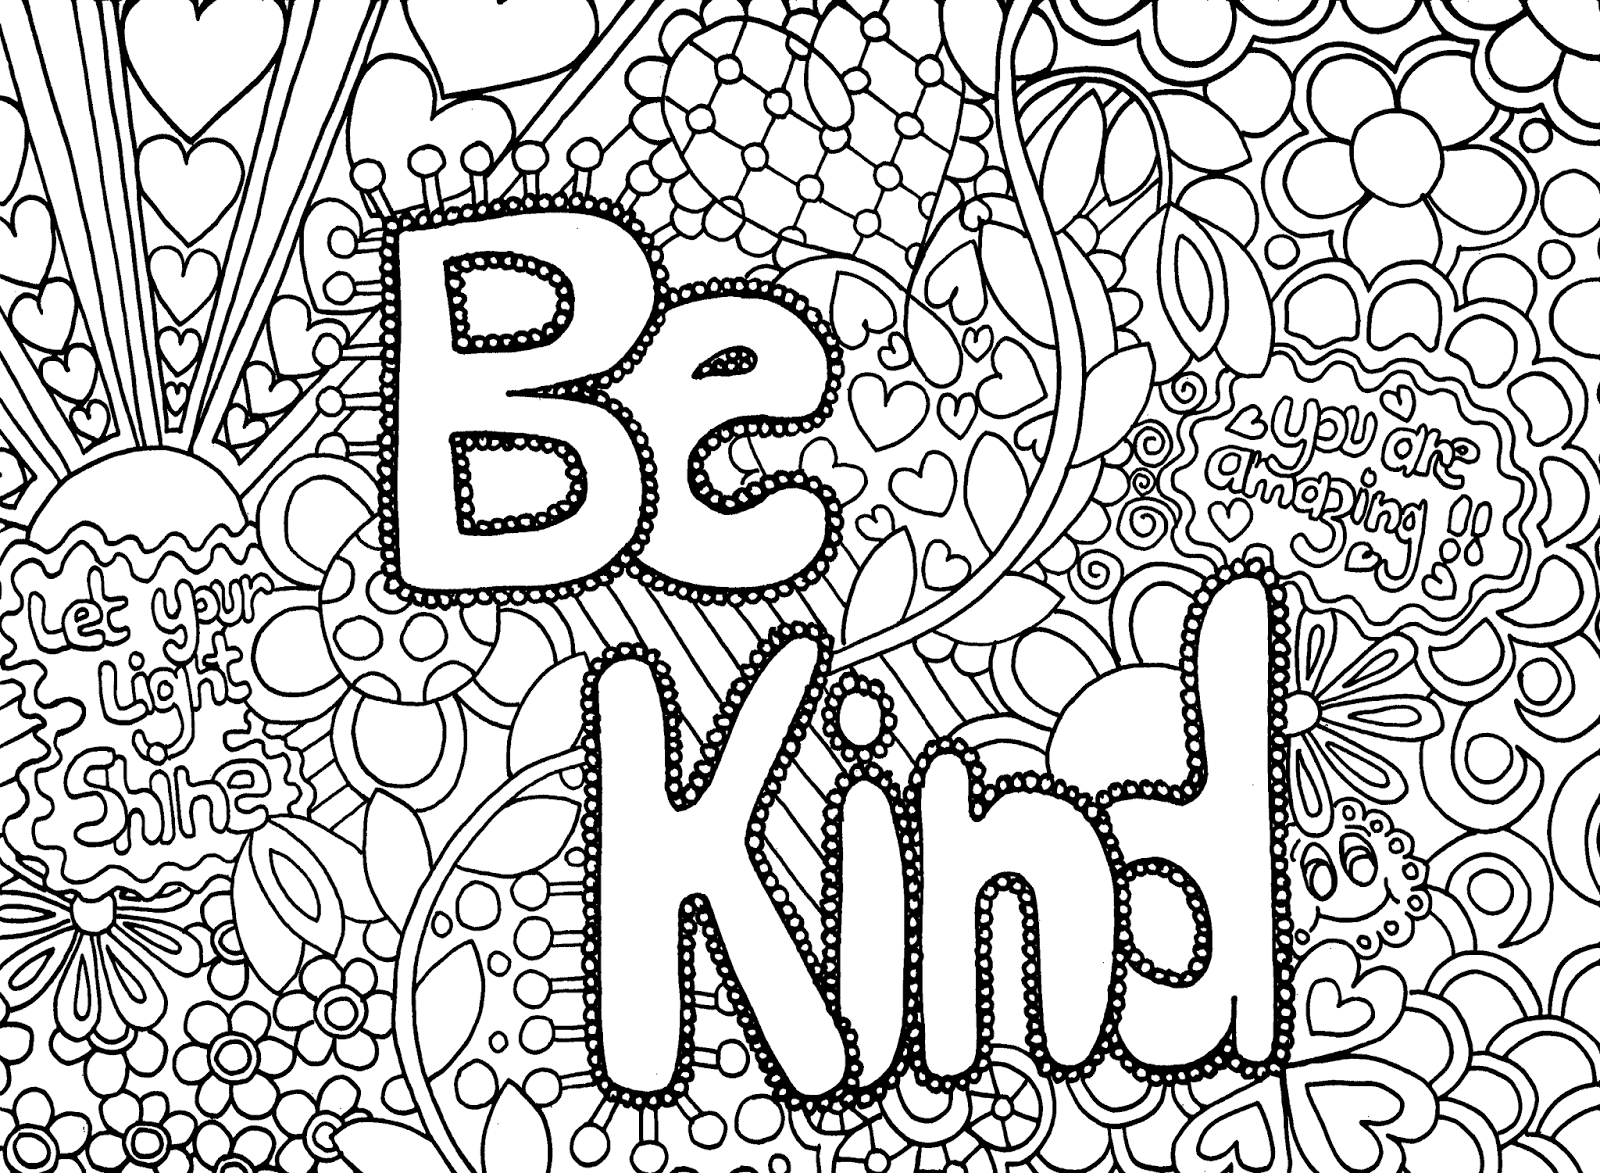 fun coloring pictures curious george coloring pages best coloring pages for kids fun pictures coloring